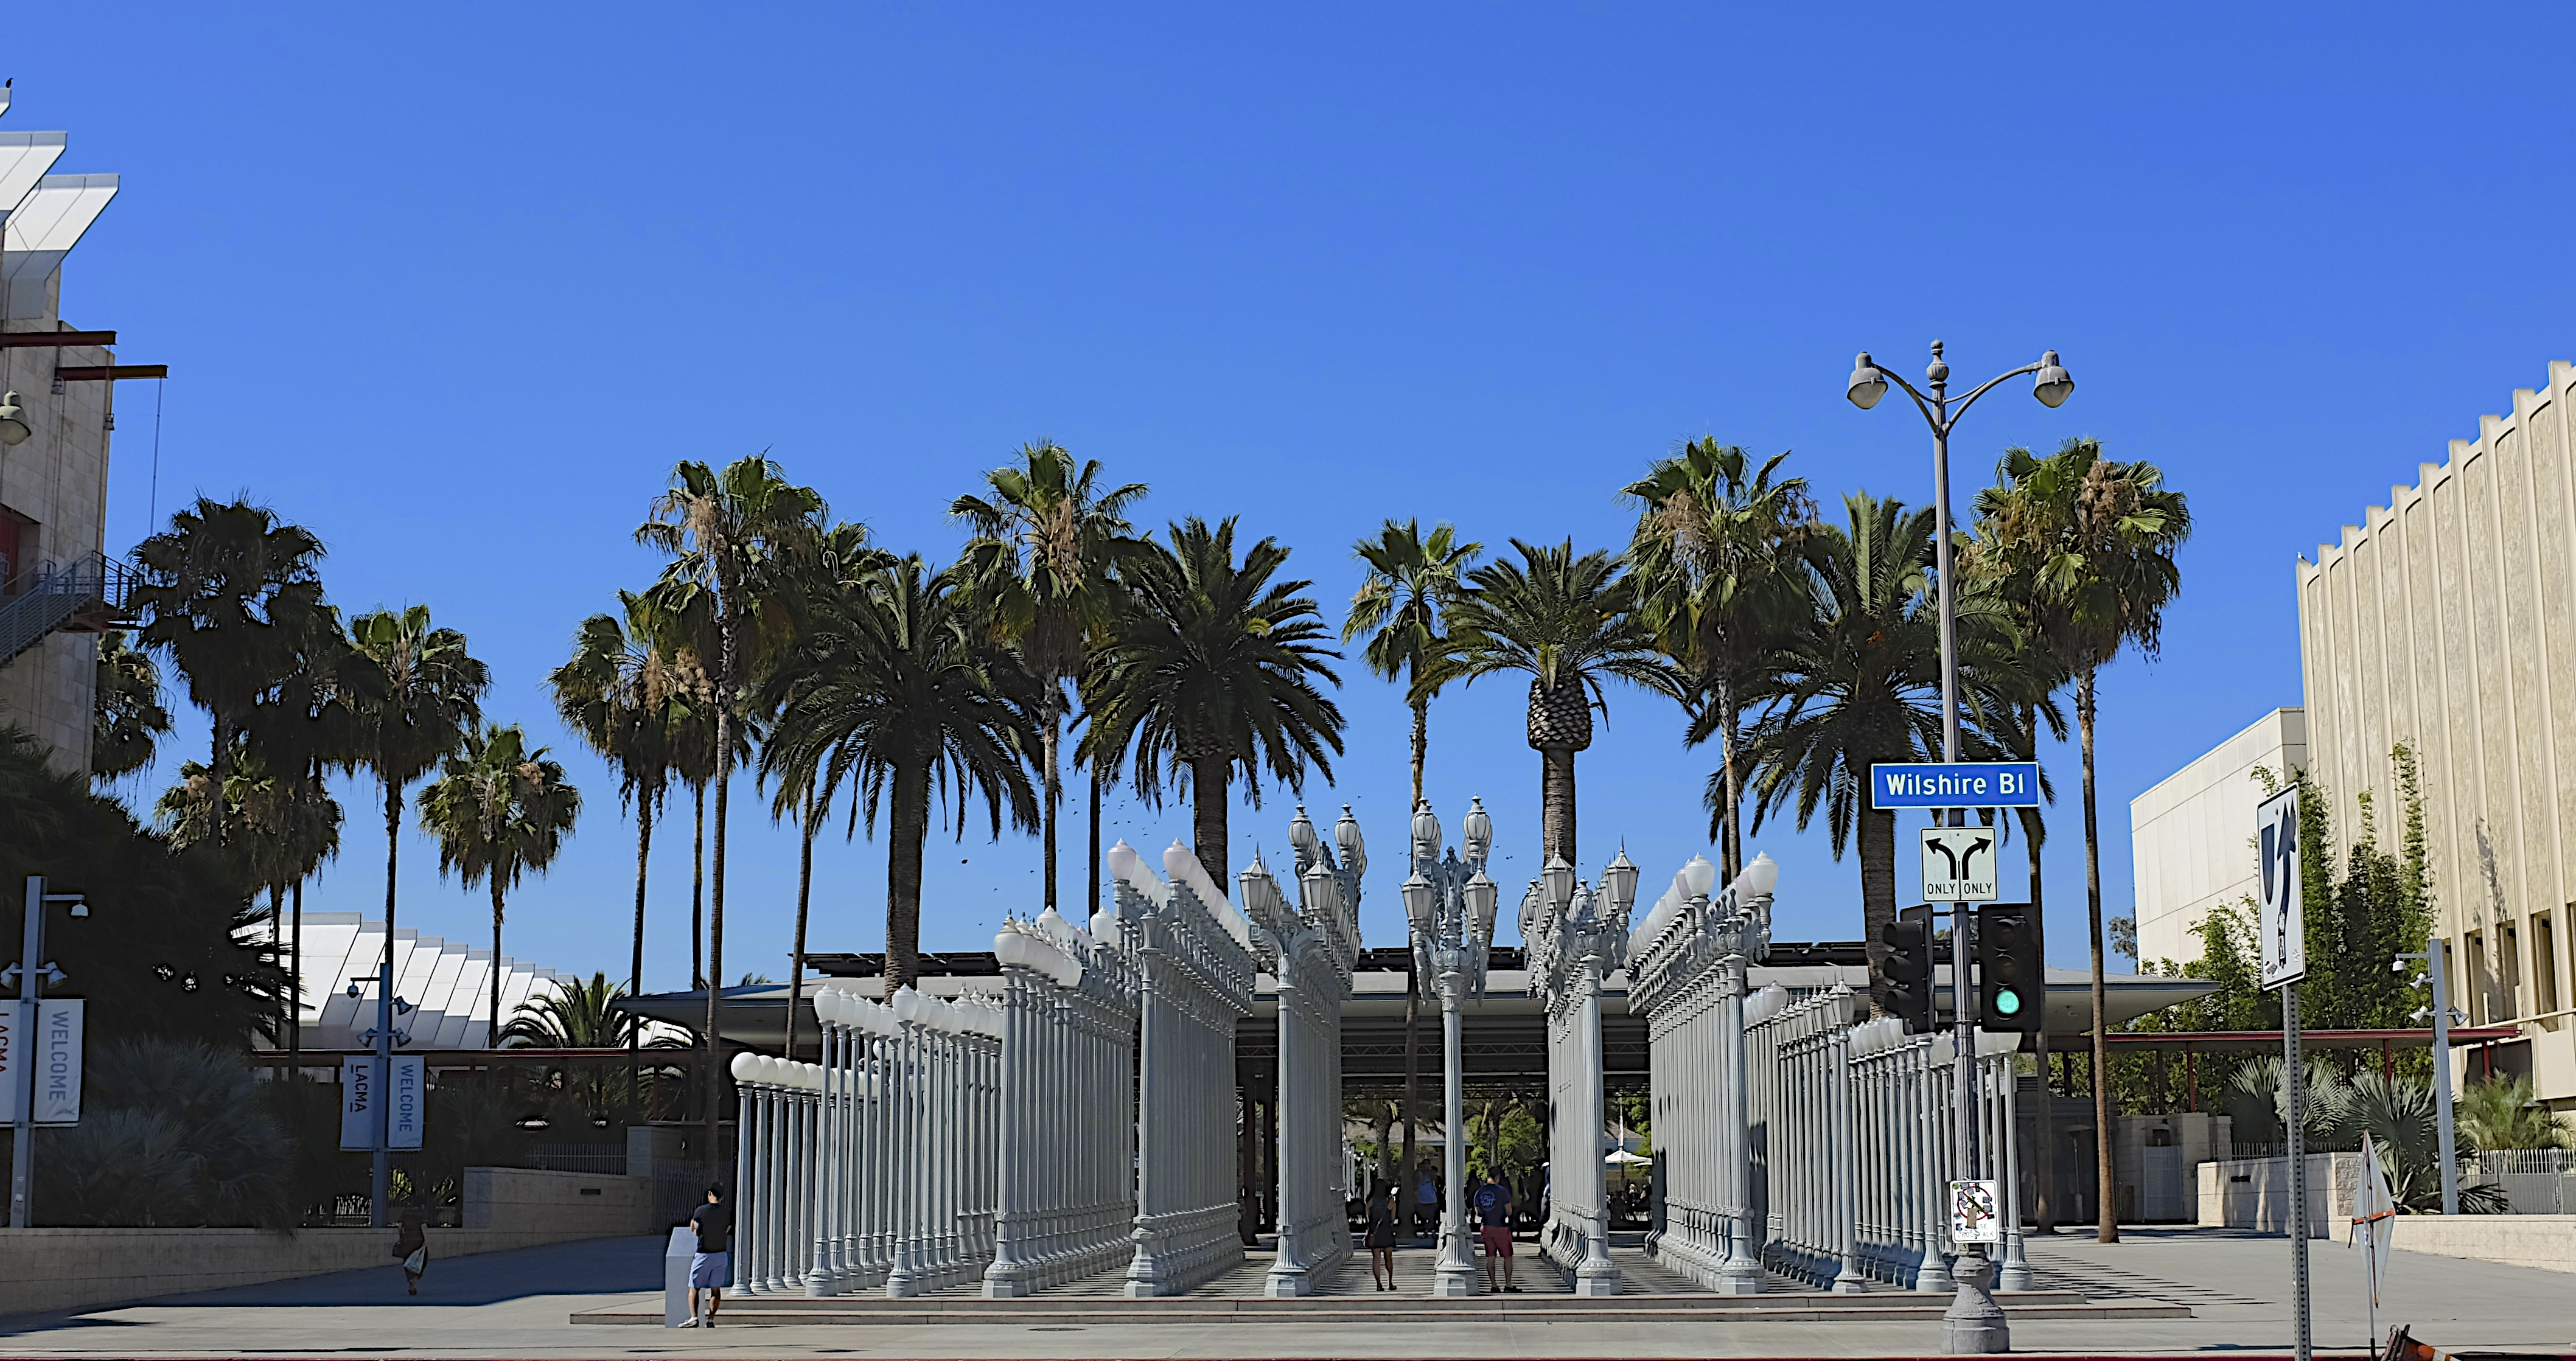 Ten Not Tourist Things To Do In LA On A Sunday | Travel Well, Fly Safe